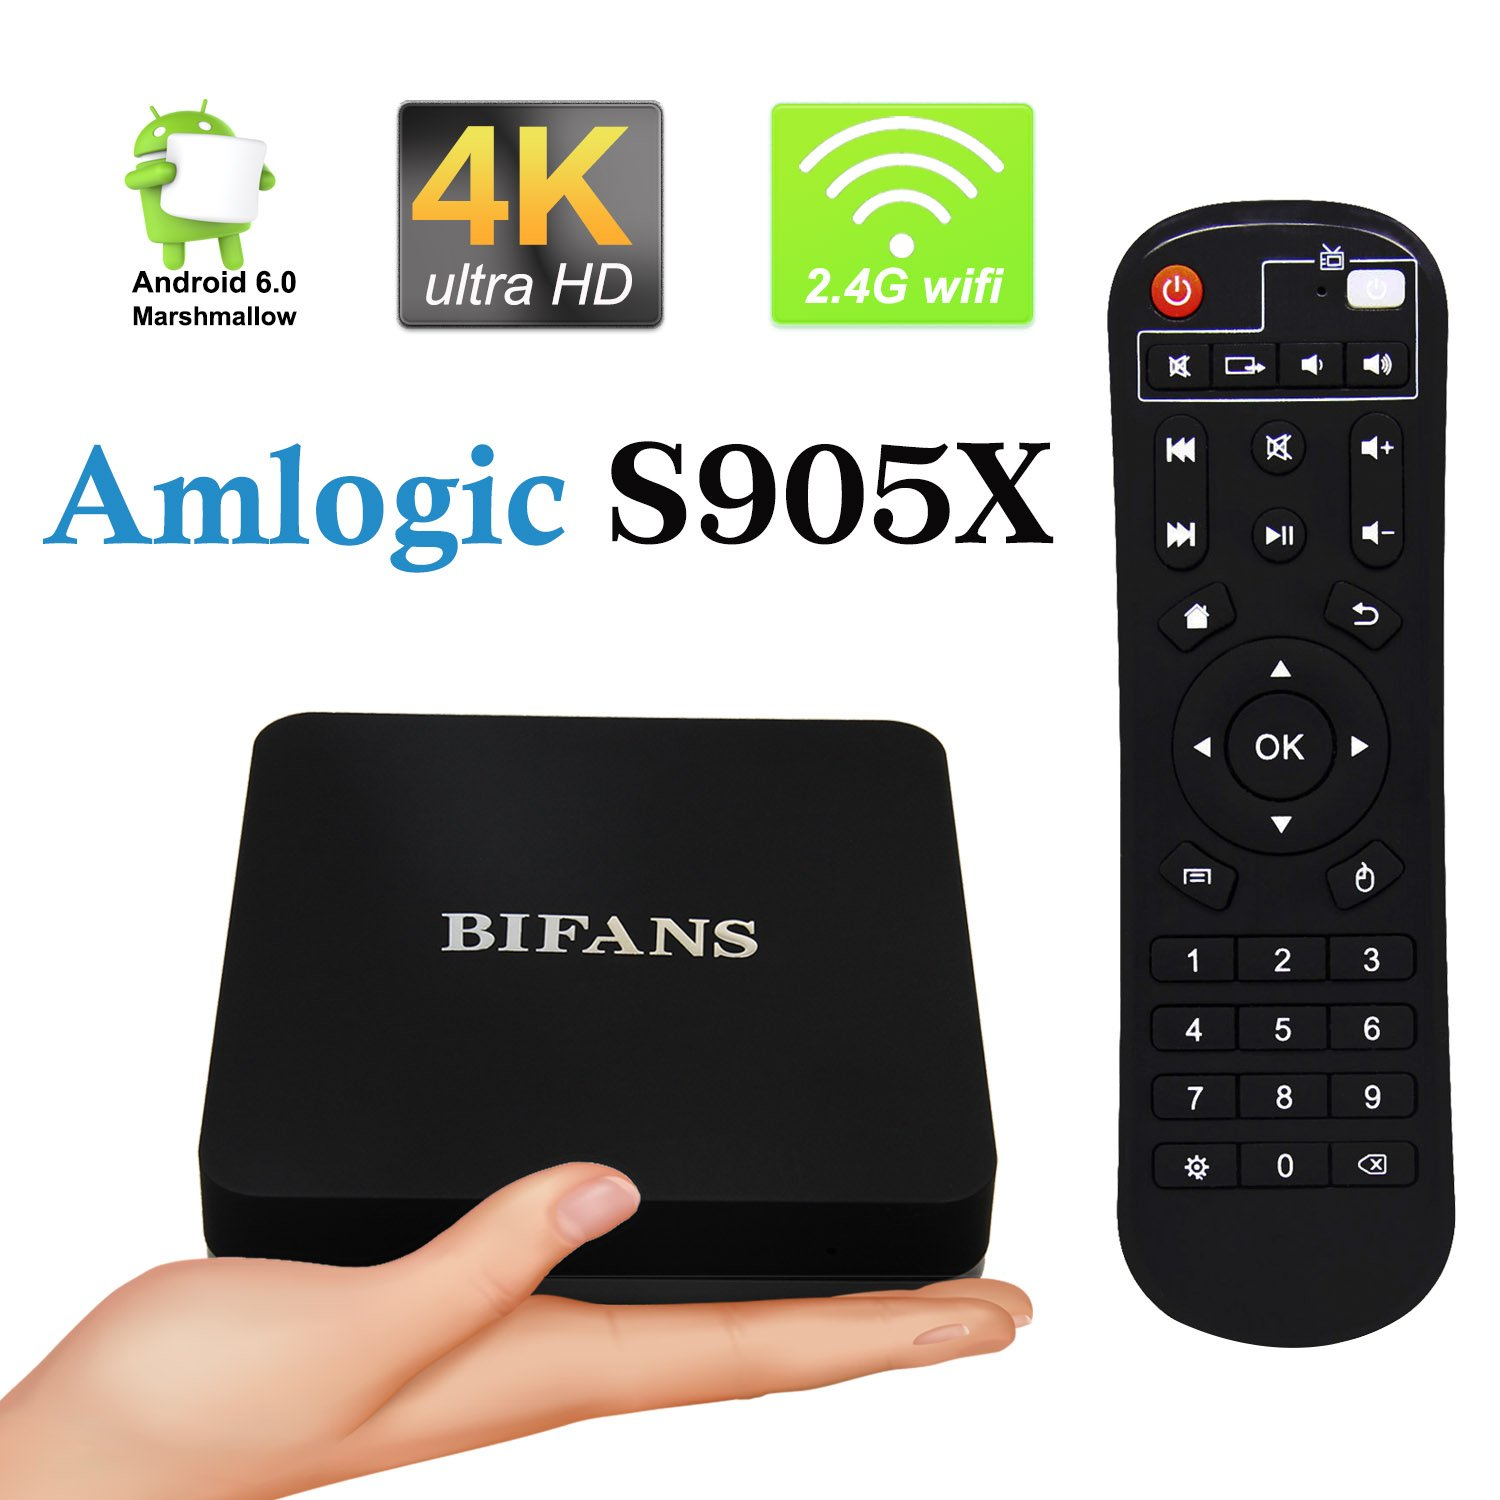 Android 6.0 TV Box, Pro RAM 1GB ROM 8GB Android TV Box Amlogic S905X Quad-Core 64 Bits and True 4K HDR Ultra-HD Streaming Media Players with IR Remote Control Black (S905X)